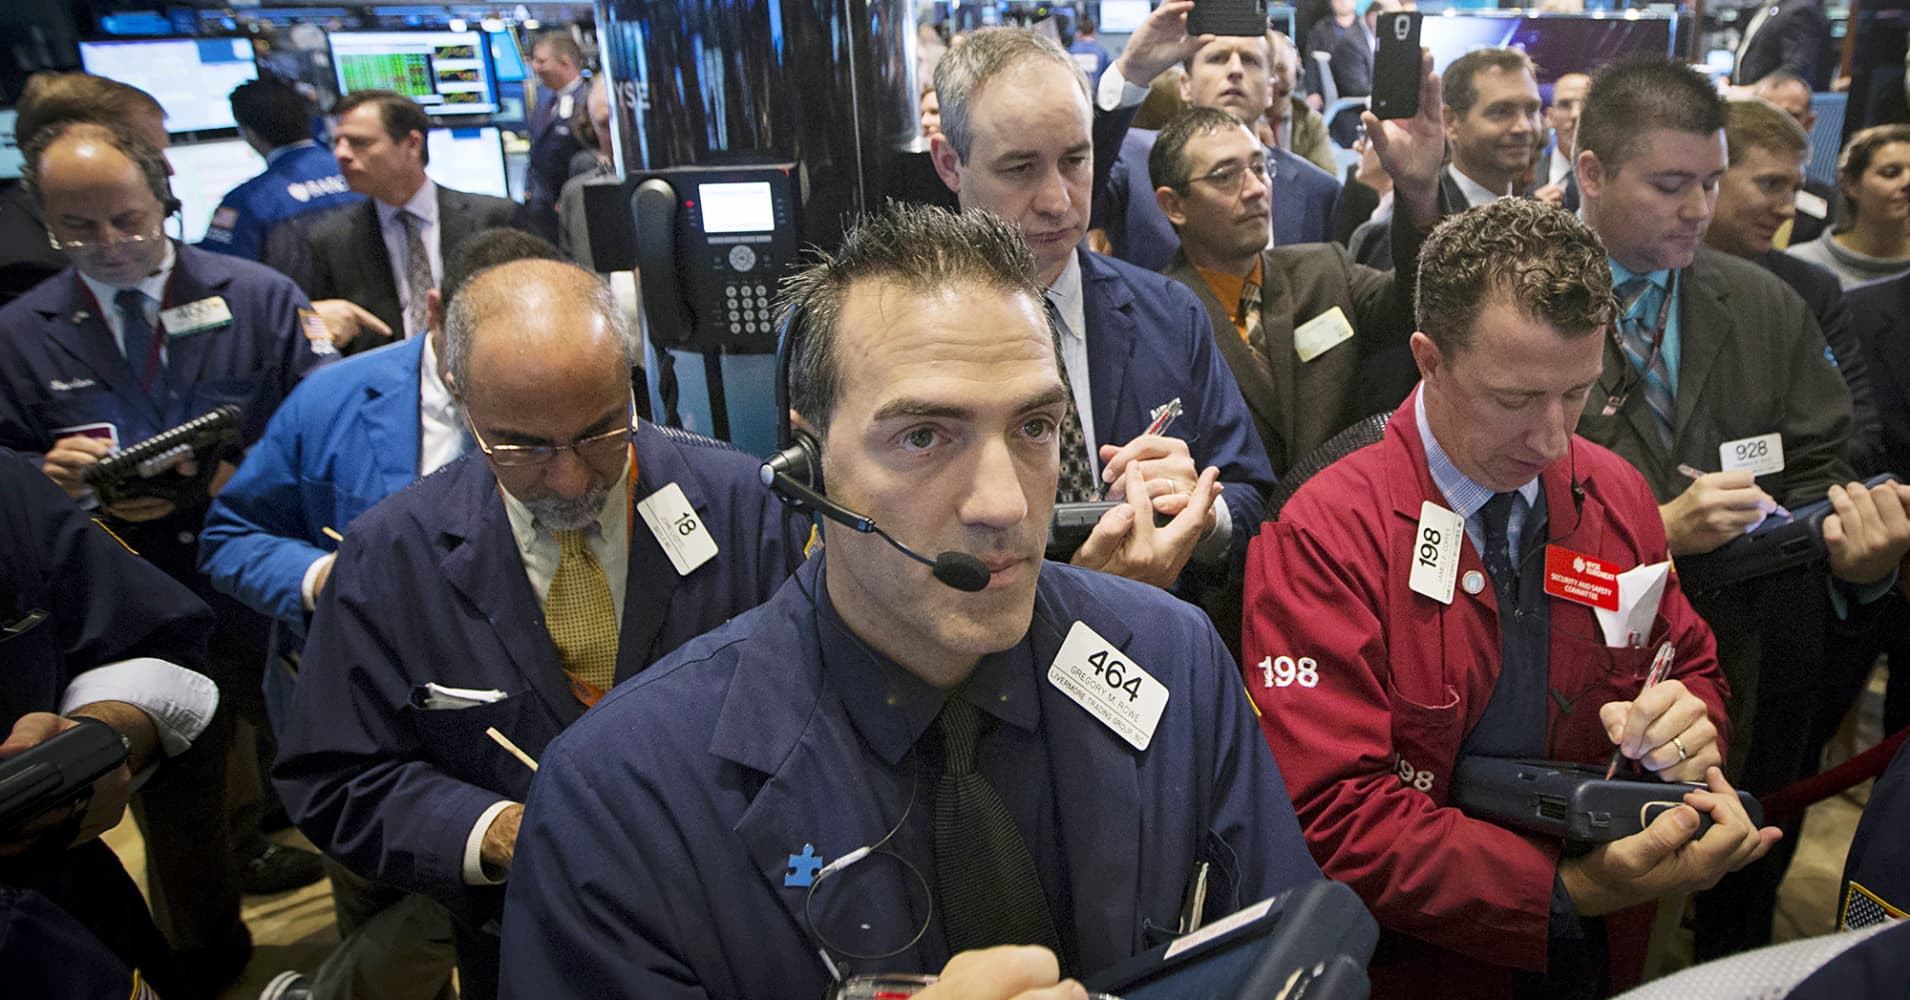 http://fm.cnbc.com/applications/cnbc.com/resources/img/editorial/2014/10/17/102098303-traders-new-york-stock-exchange.1910x1000.jpg